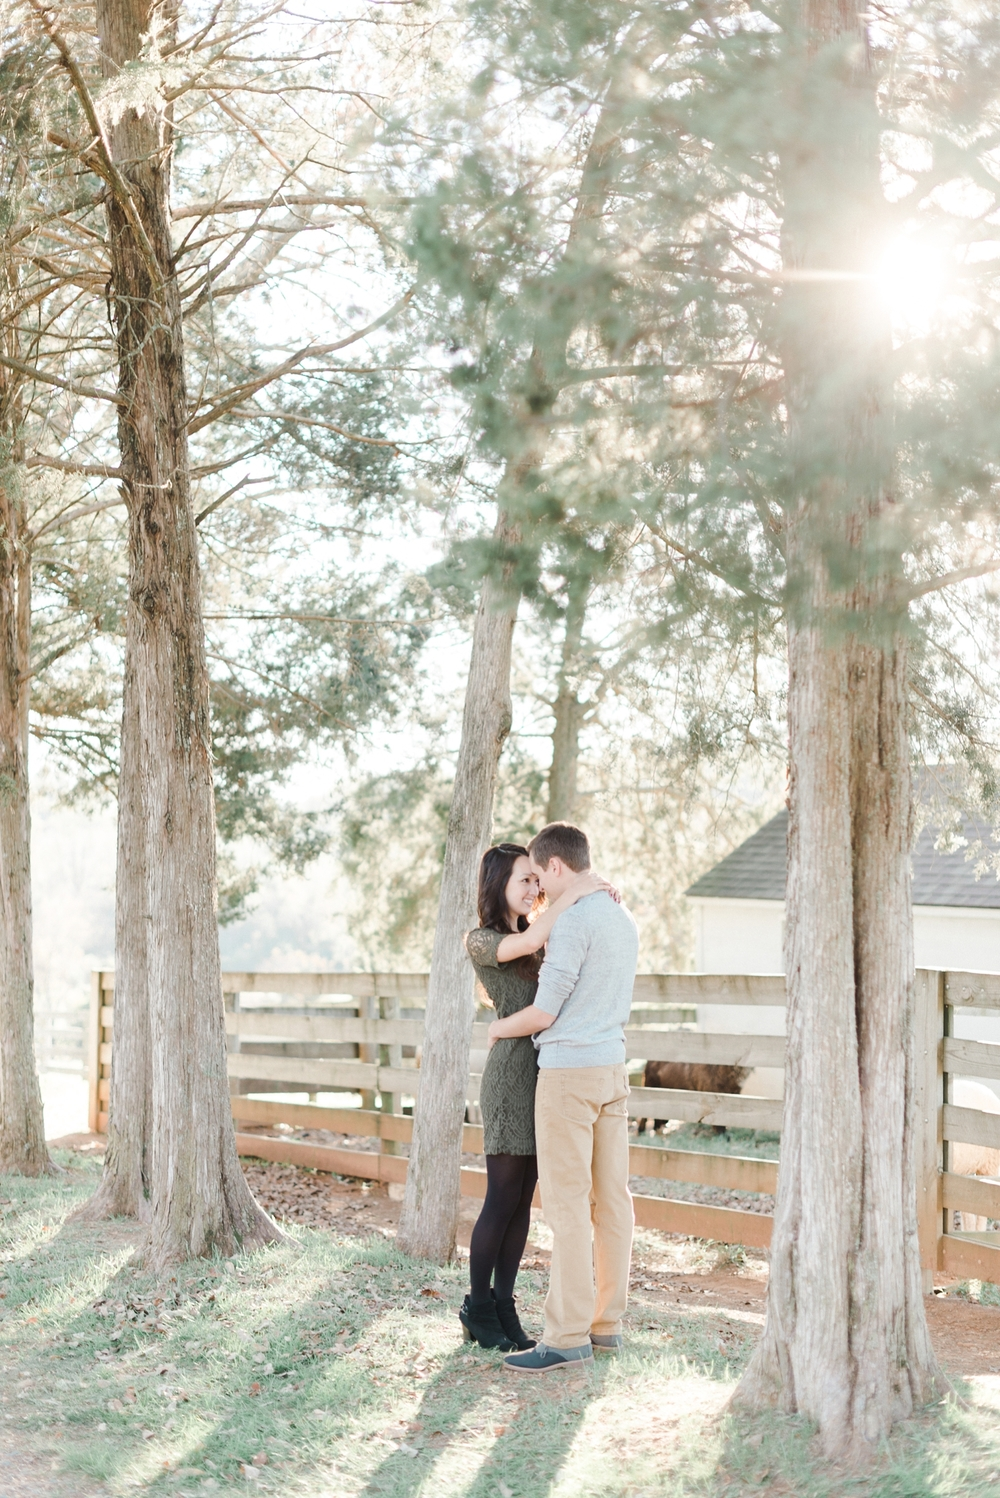 charlottesville_engagement_ashlawn_highland_0012.jpg